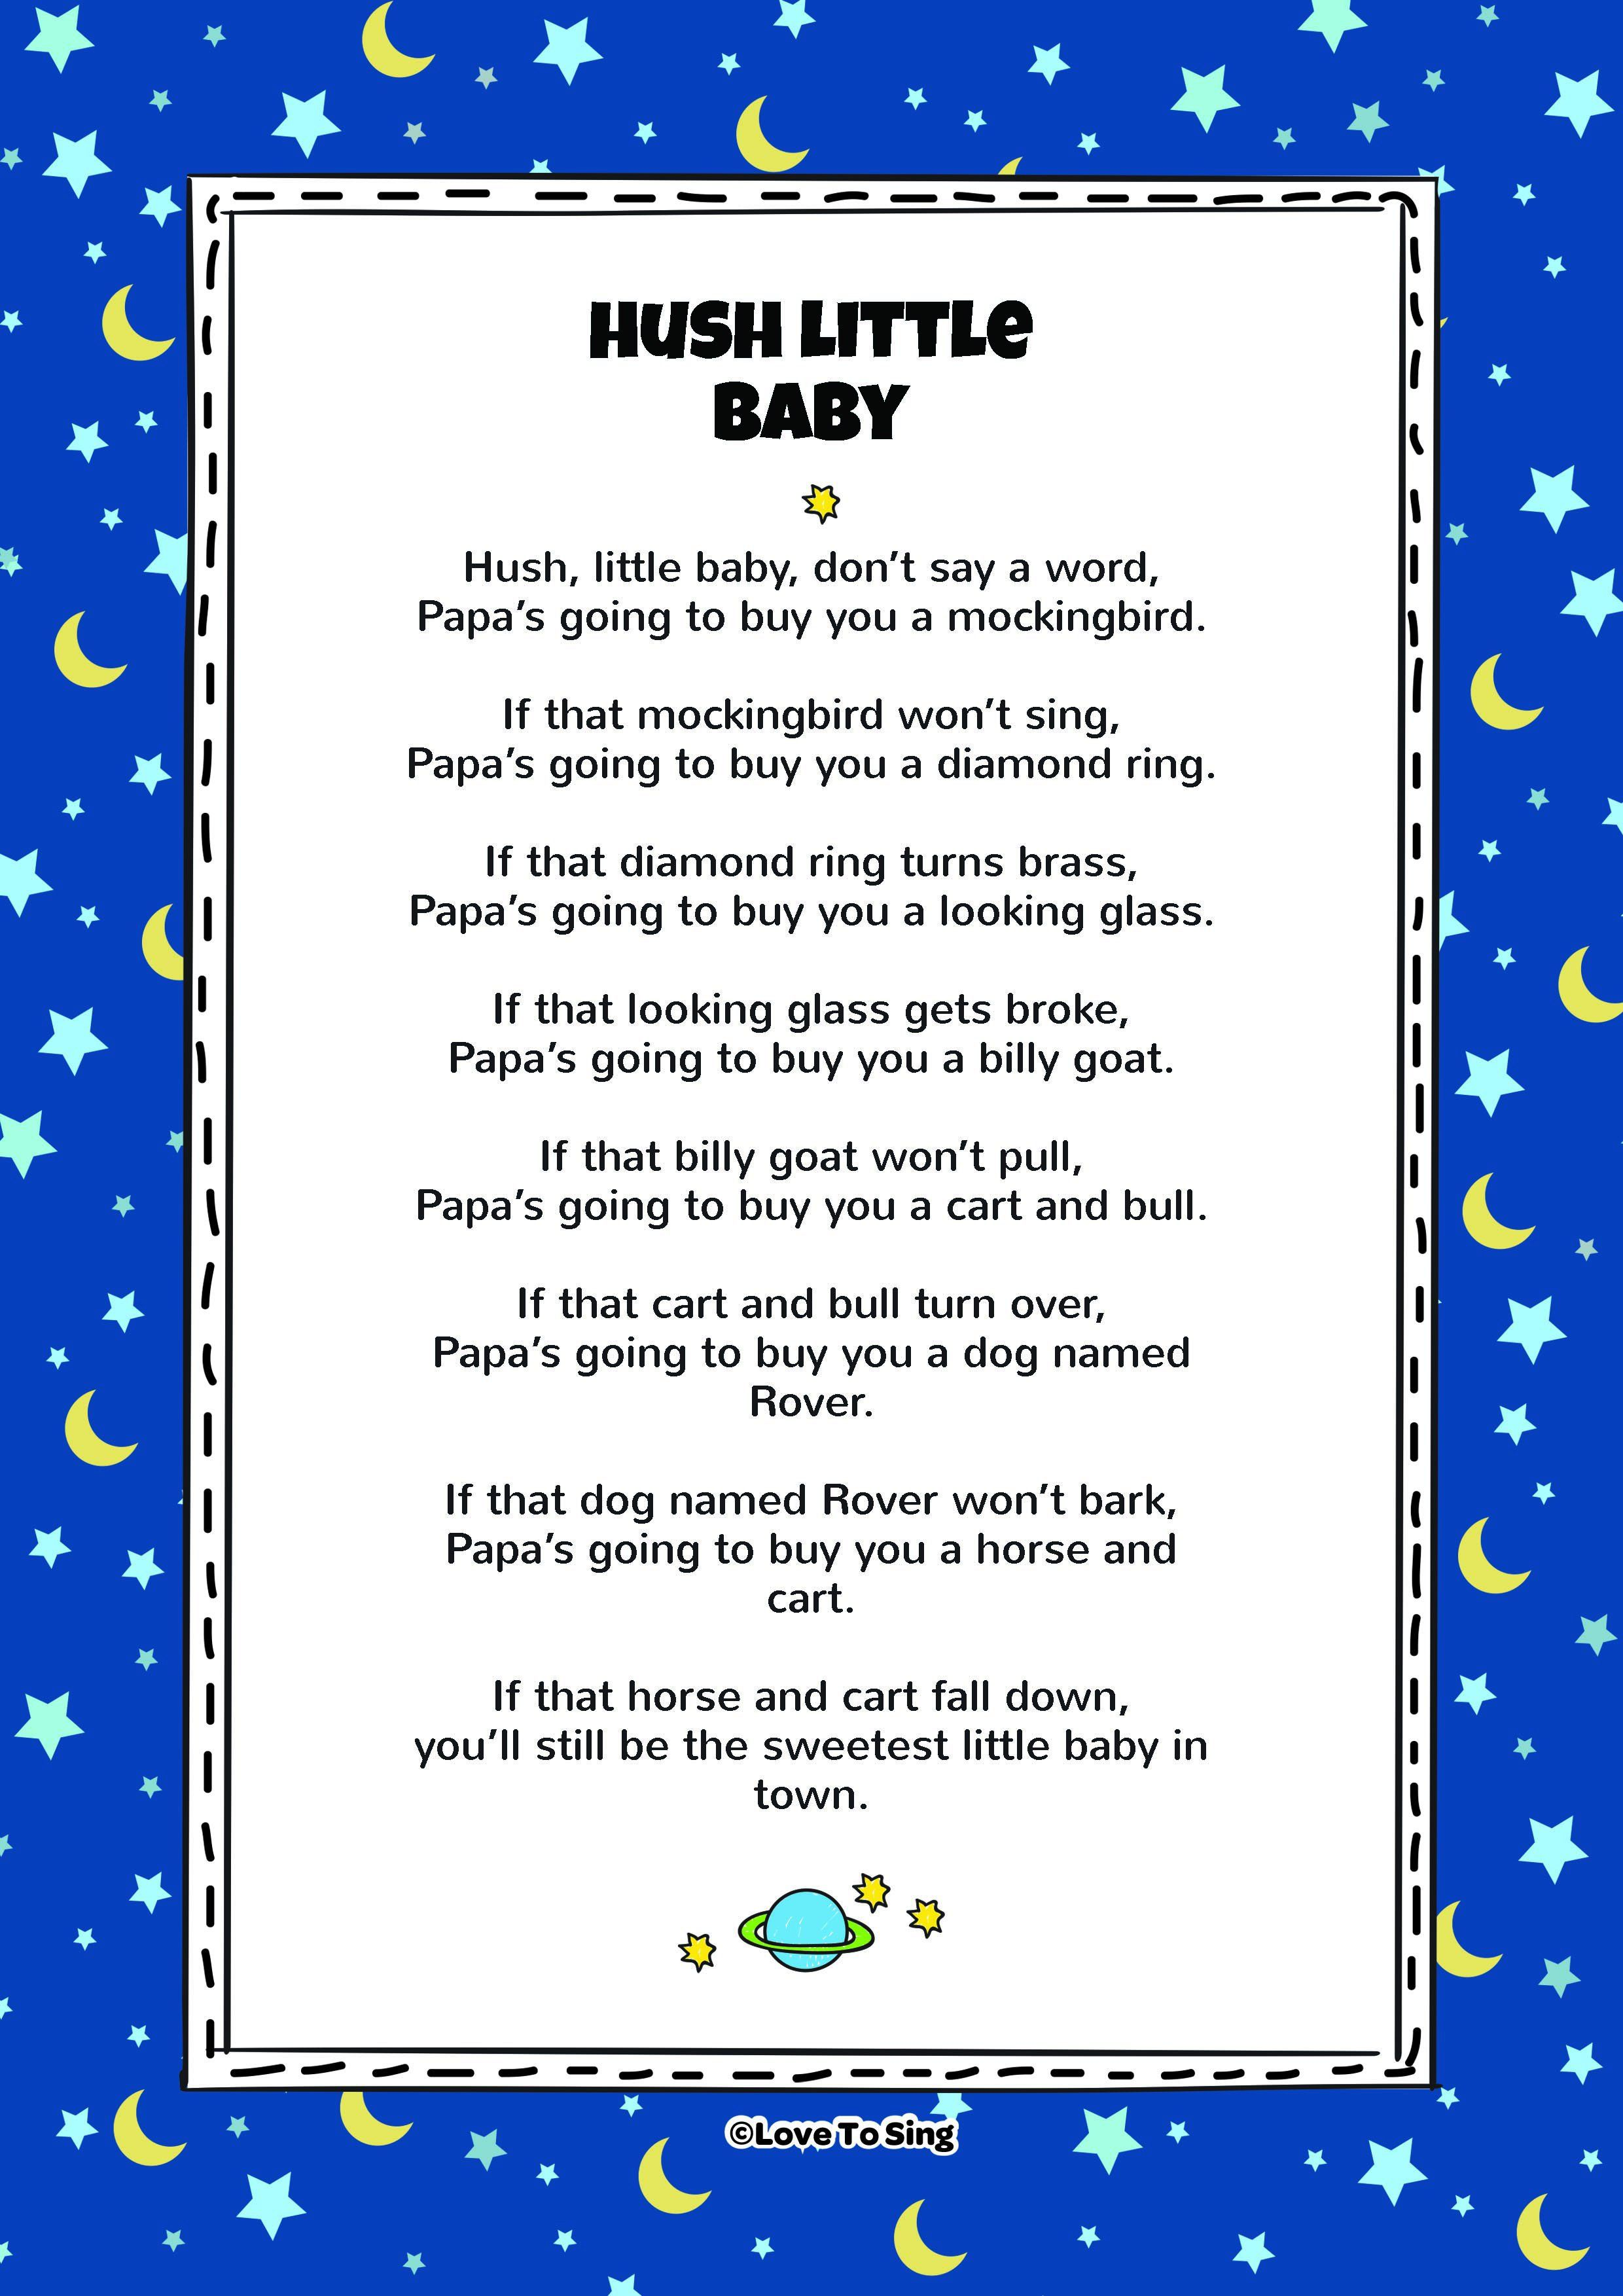 Download This Popular Kids Video Song Hush Little Baby With Free Lyrics And Fun Activities